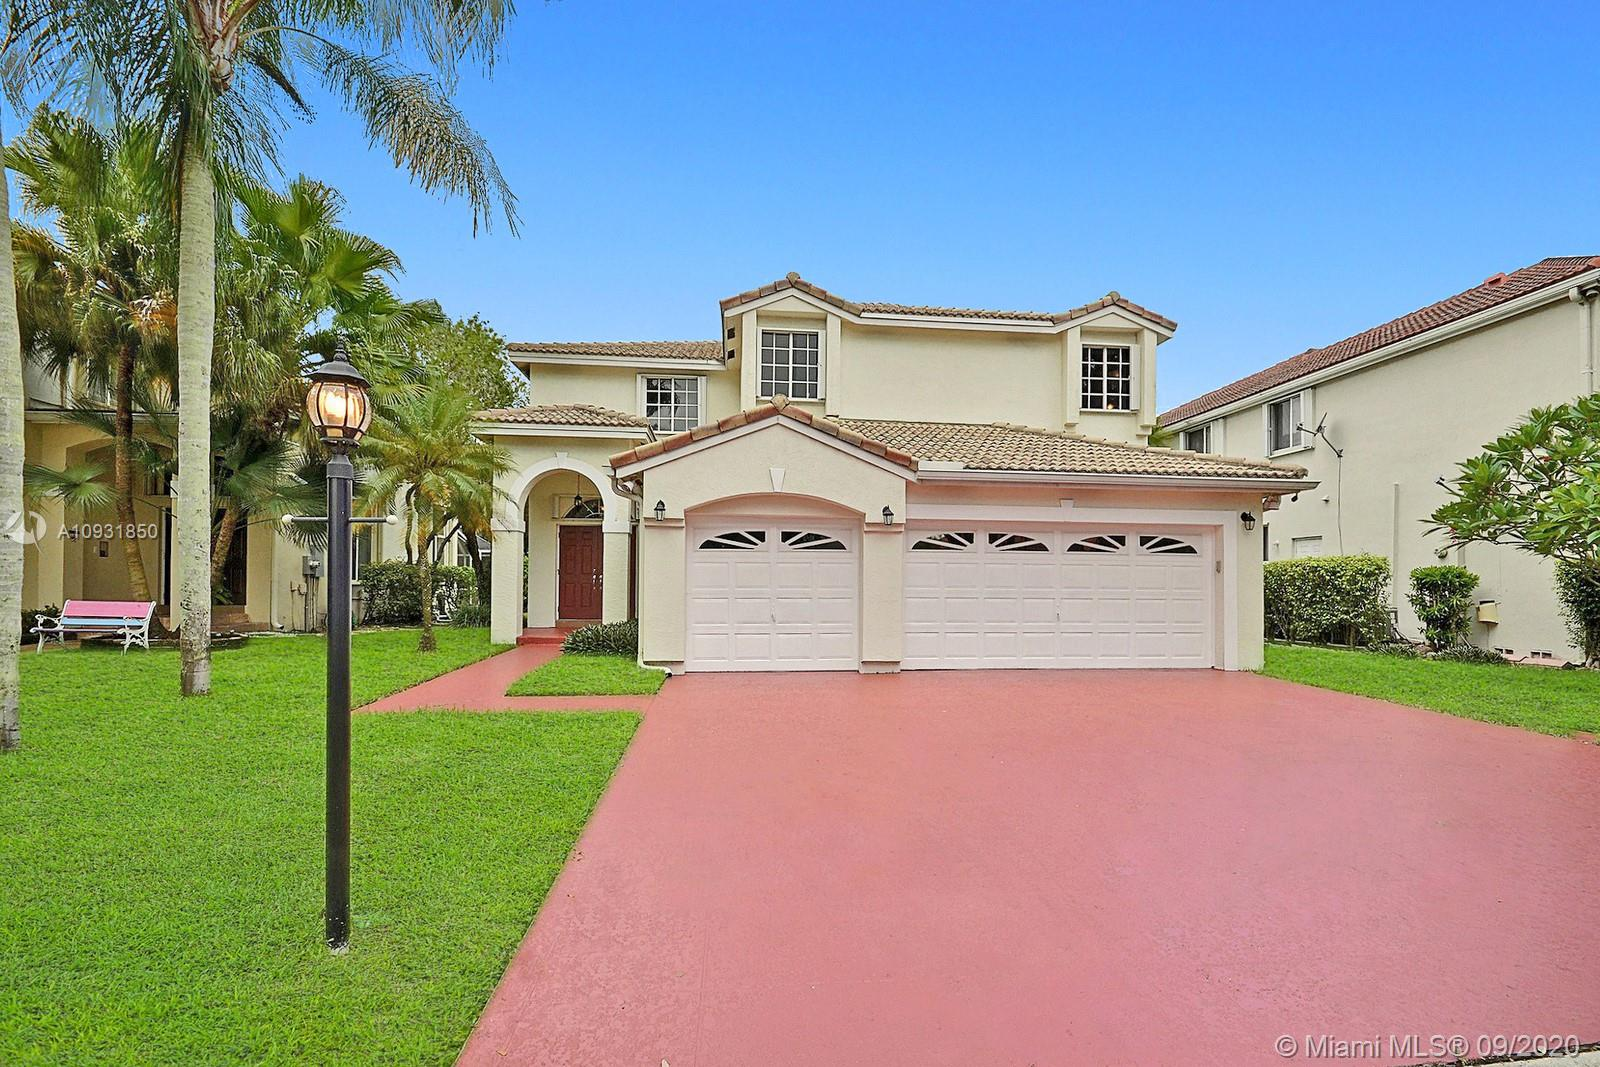 4180 Lansing Ave, Cooper City, Florida 33026, 4 Bedrooms Bedrooms, ,3 BathroomsBathrooms,Residential,For Sale,4180 Lansing Ave,A10931850